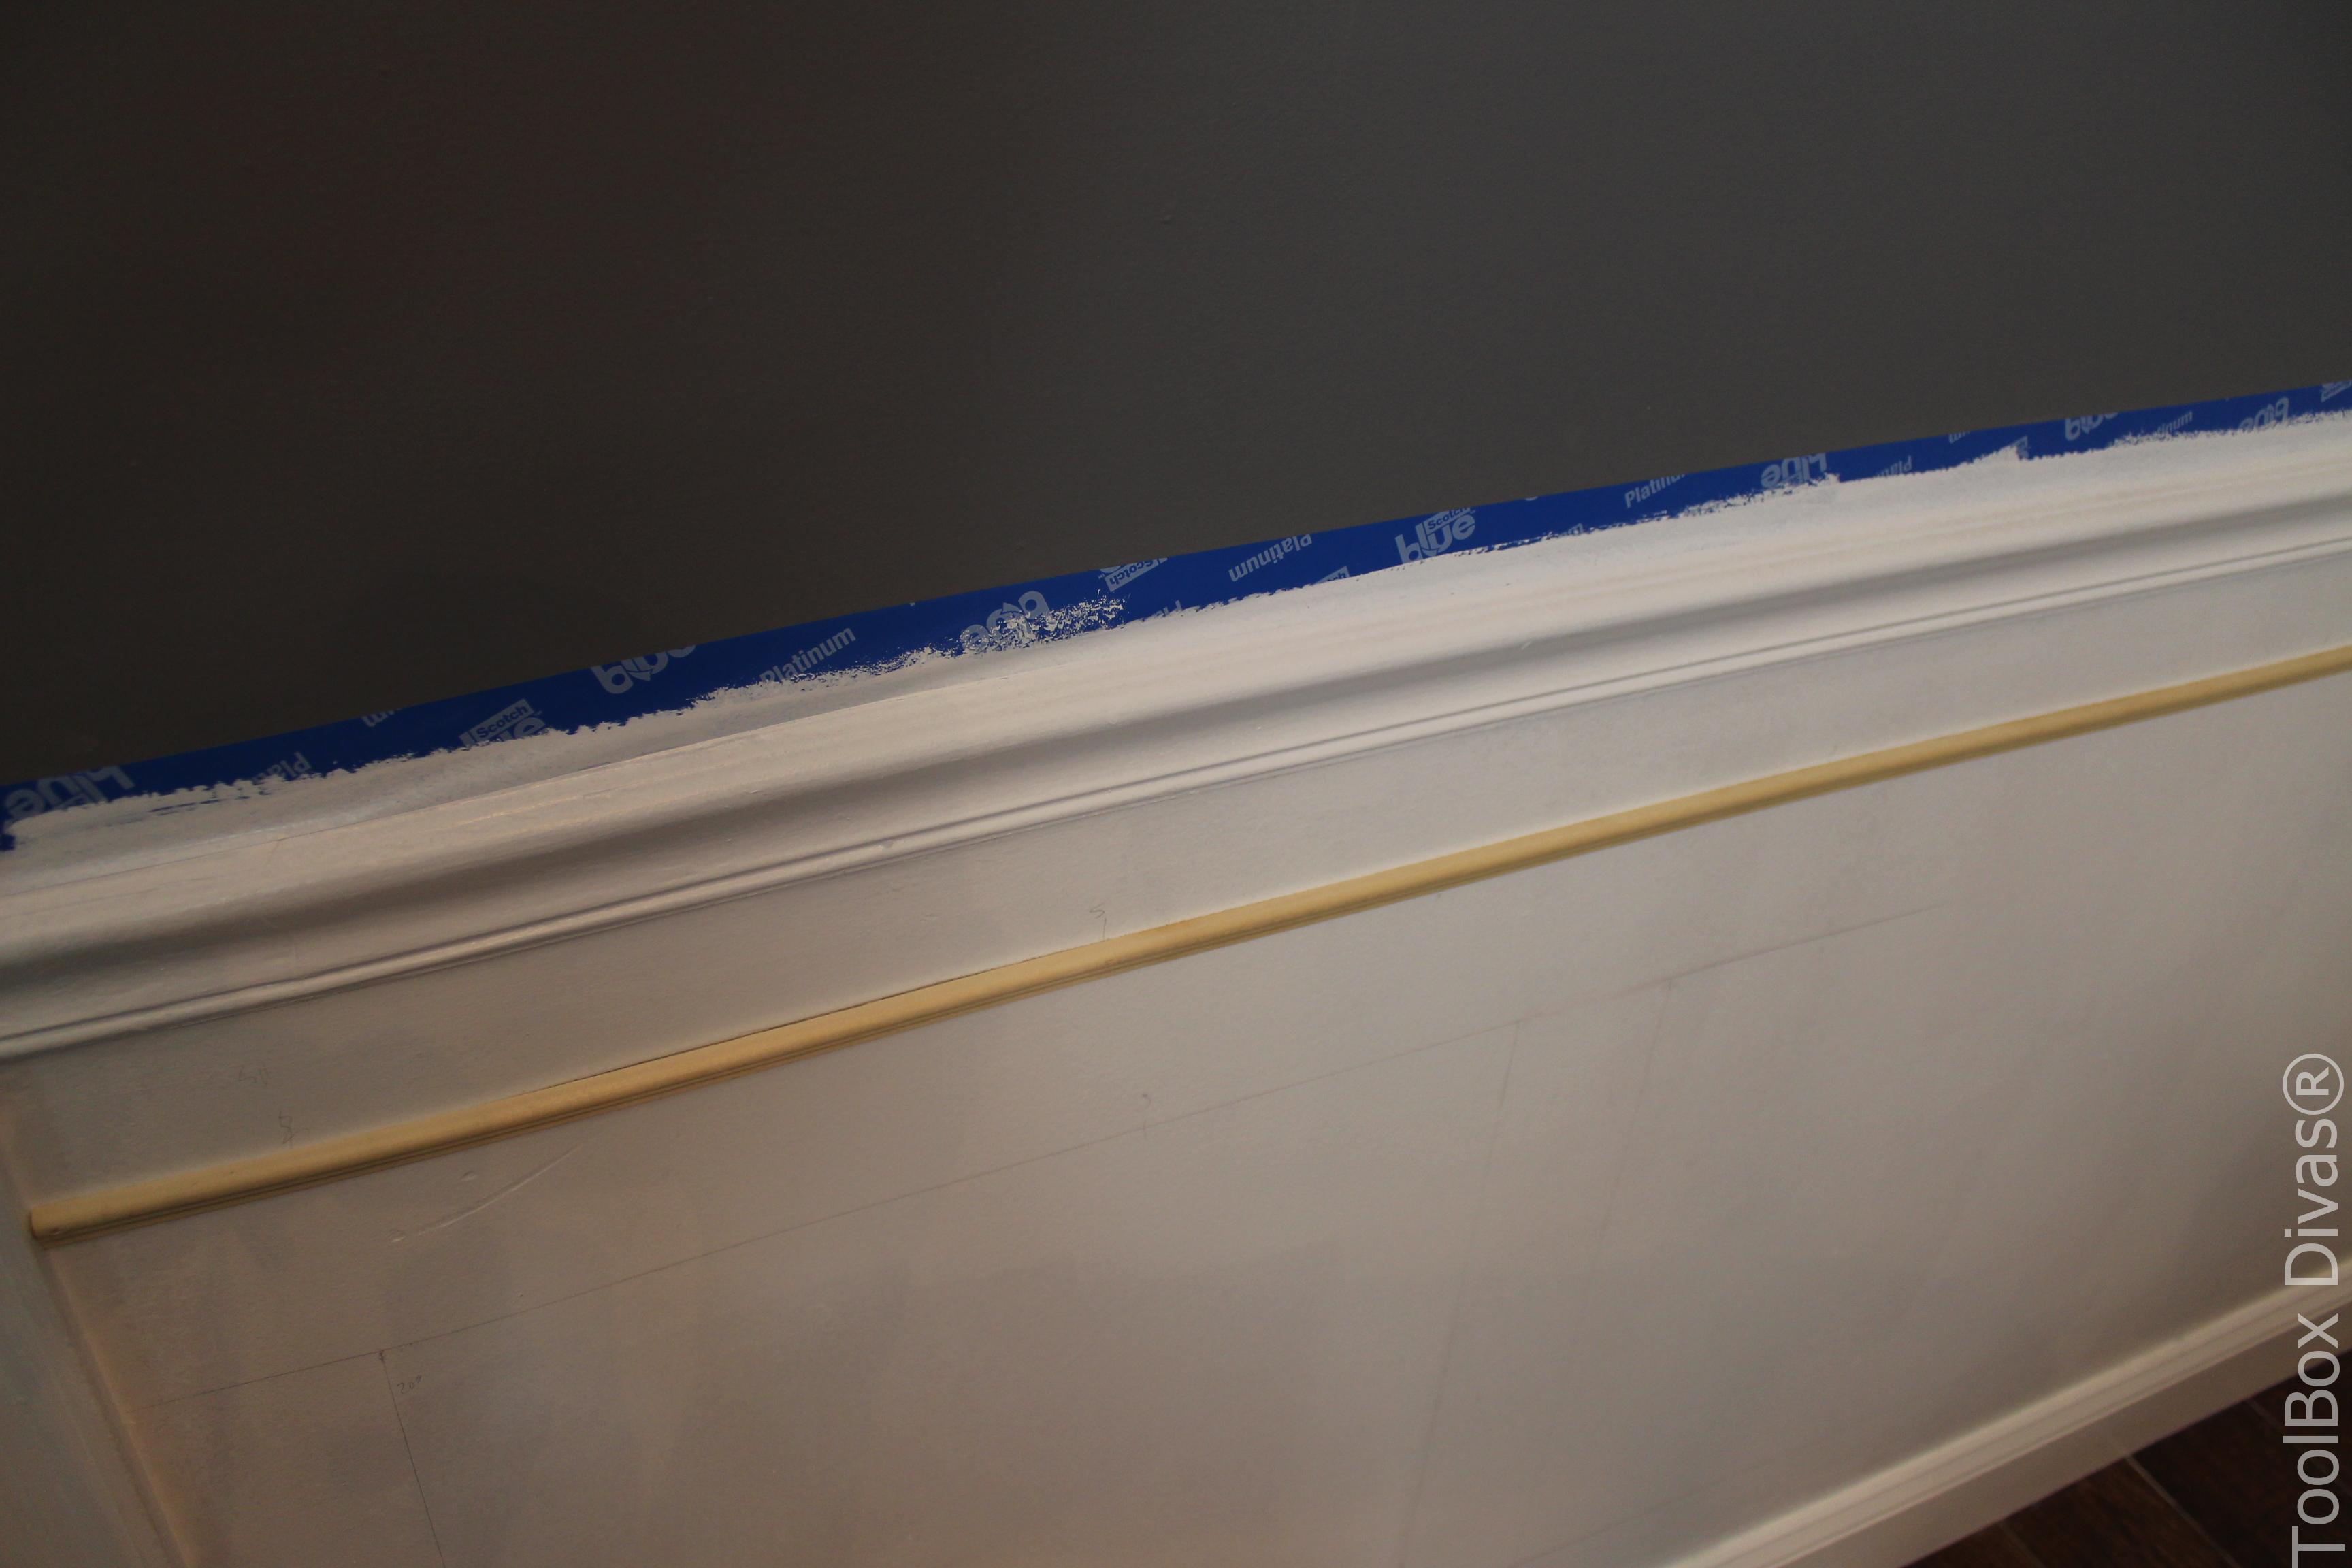 How to Install Picture Frame Moulding Wainscoting - ToolBox